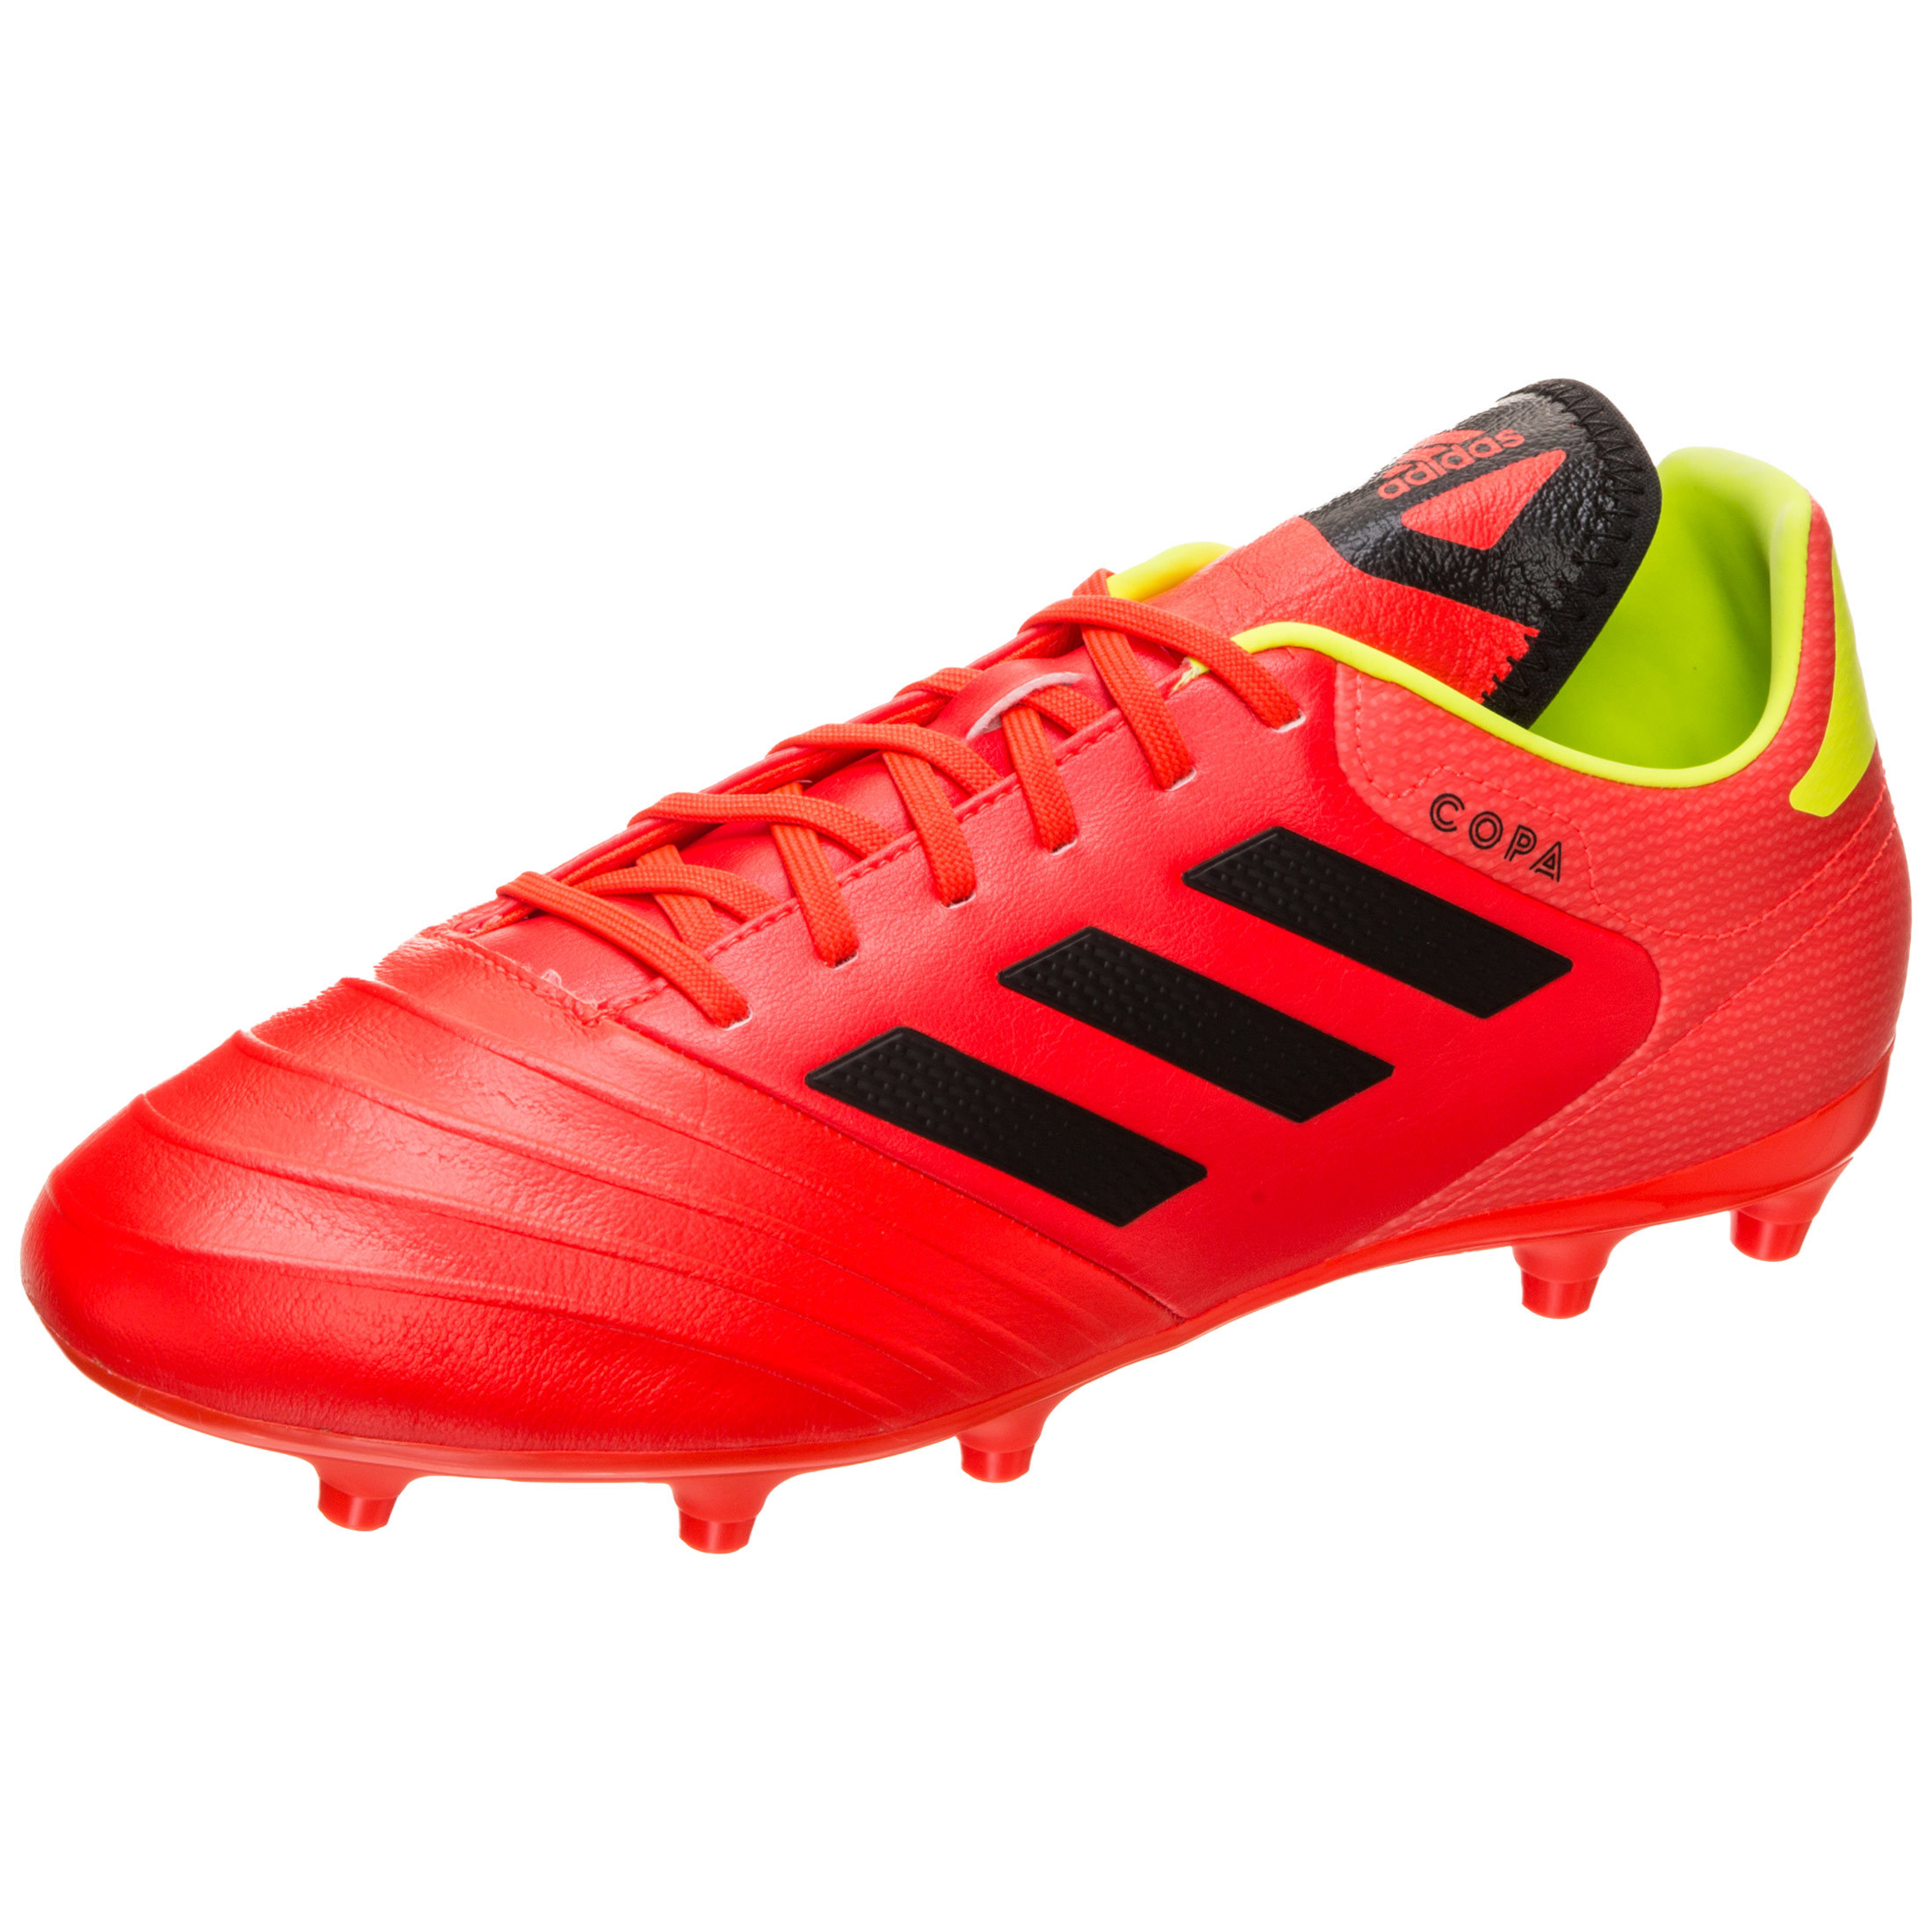 separation shoes 709a2 1c49a adidas Copa 18.3 Firm Ground Boots  DB2461  FOOTY.COM